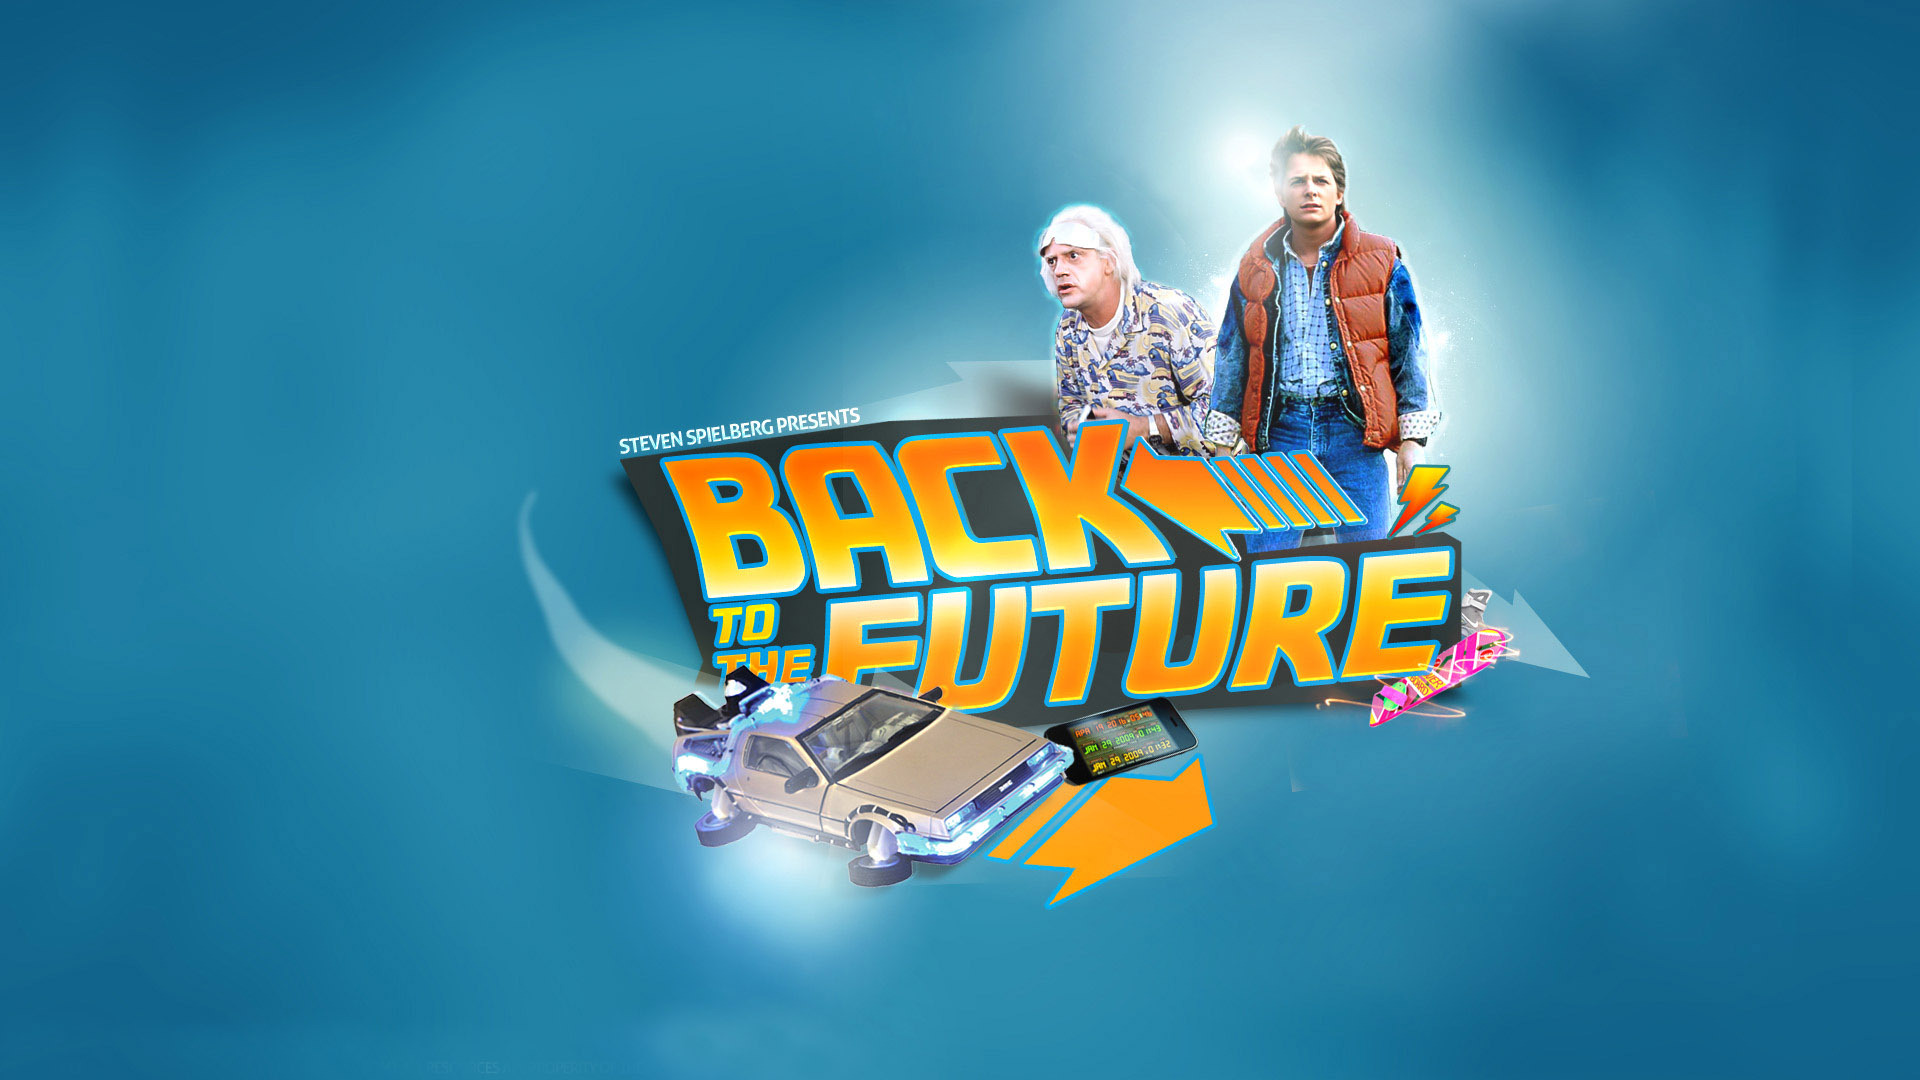 Back to the Future wallpaper 33918 1920x1080